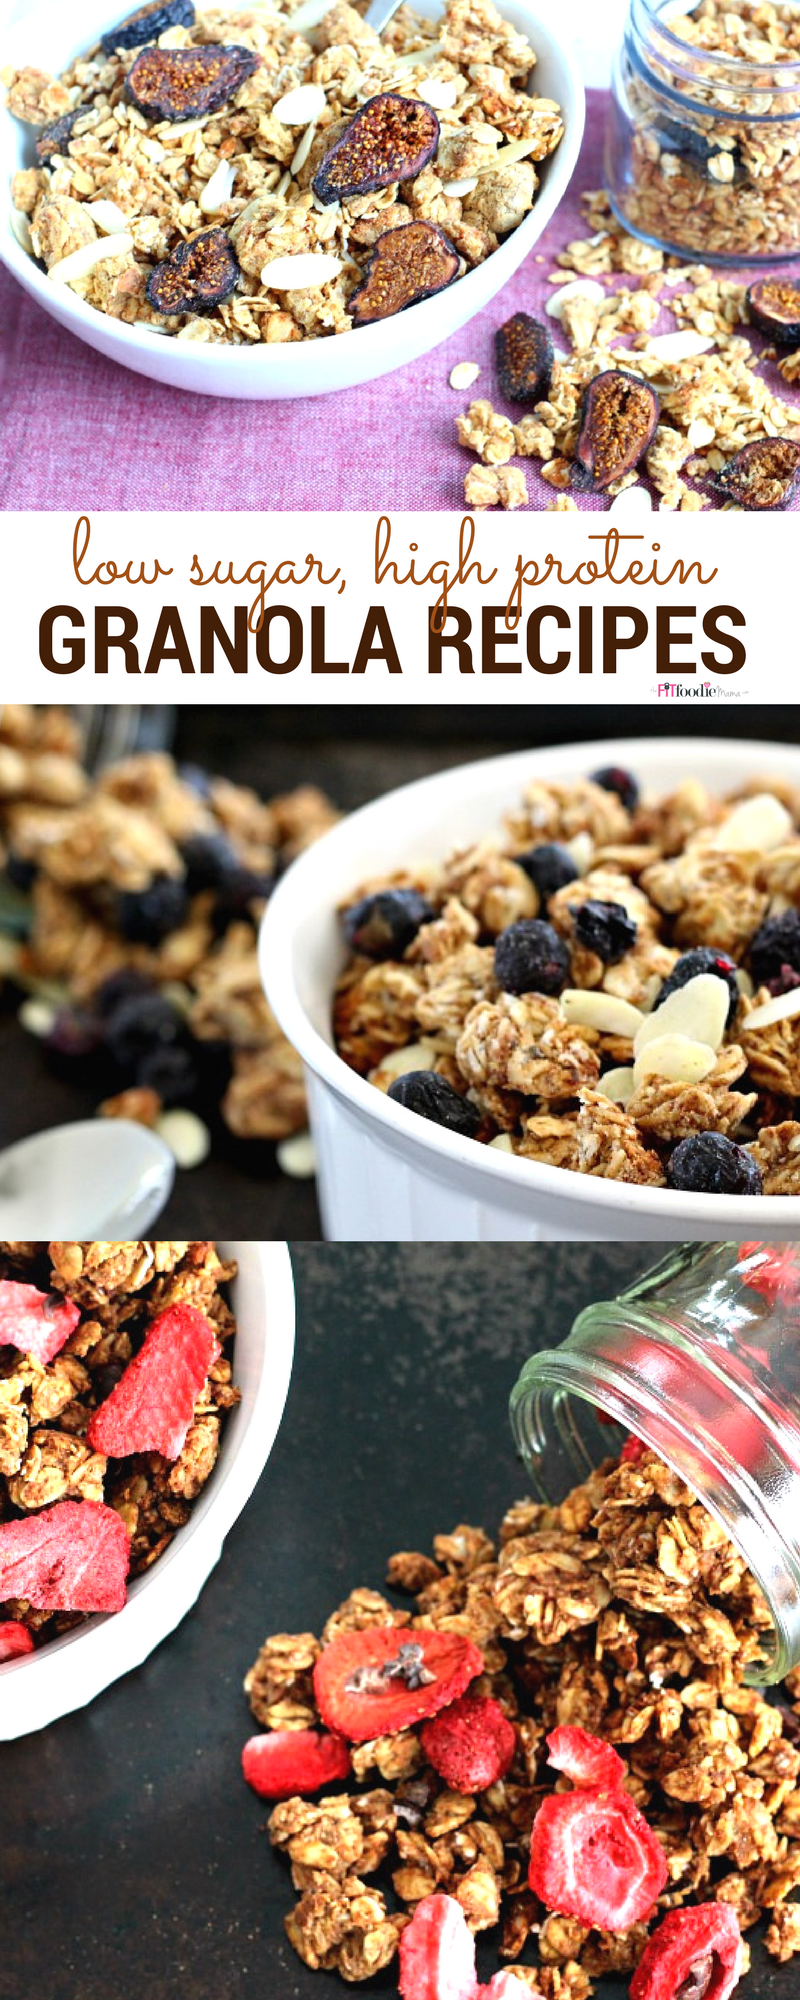 Low sugar, high protein gluten free granola recipes to fuel your morning.  Make them ahead and enjoy these healthy homemade granola recipes for breakfast.